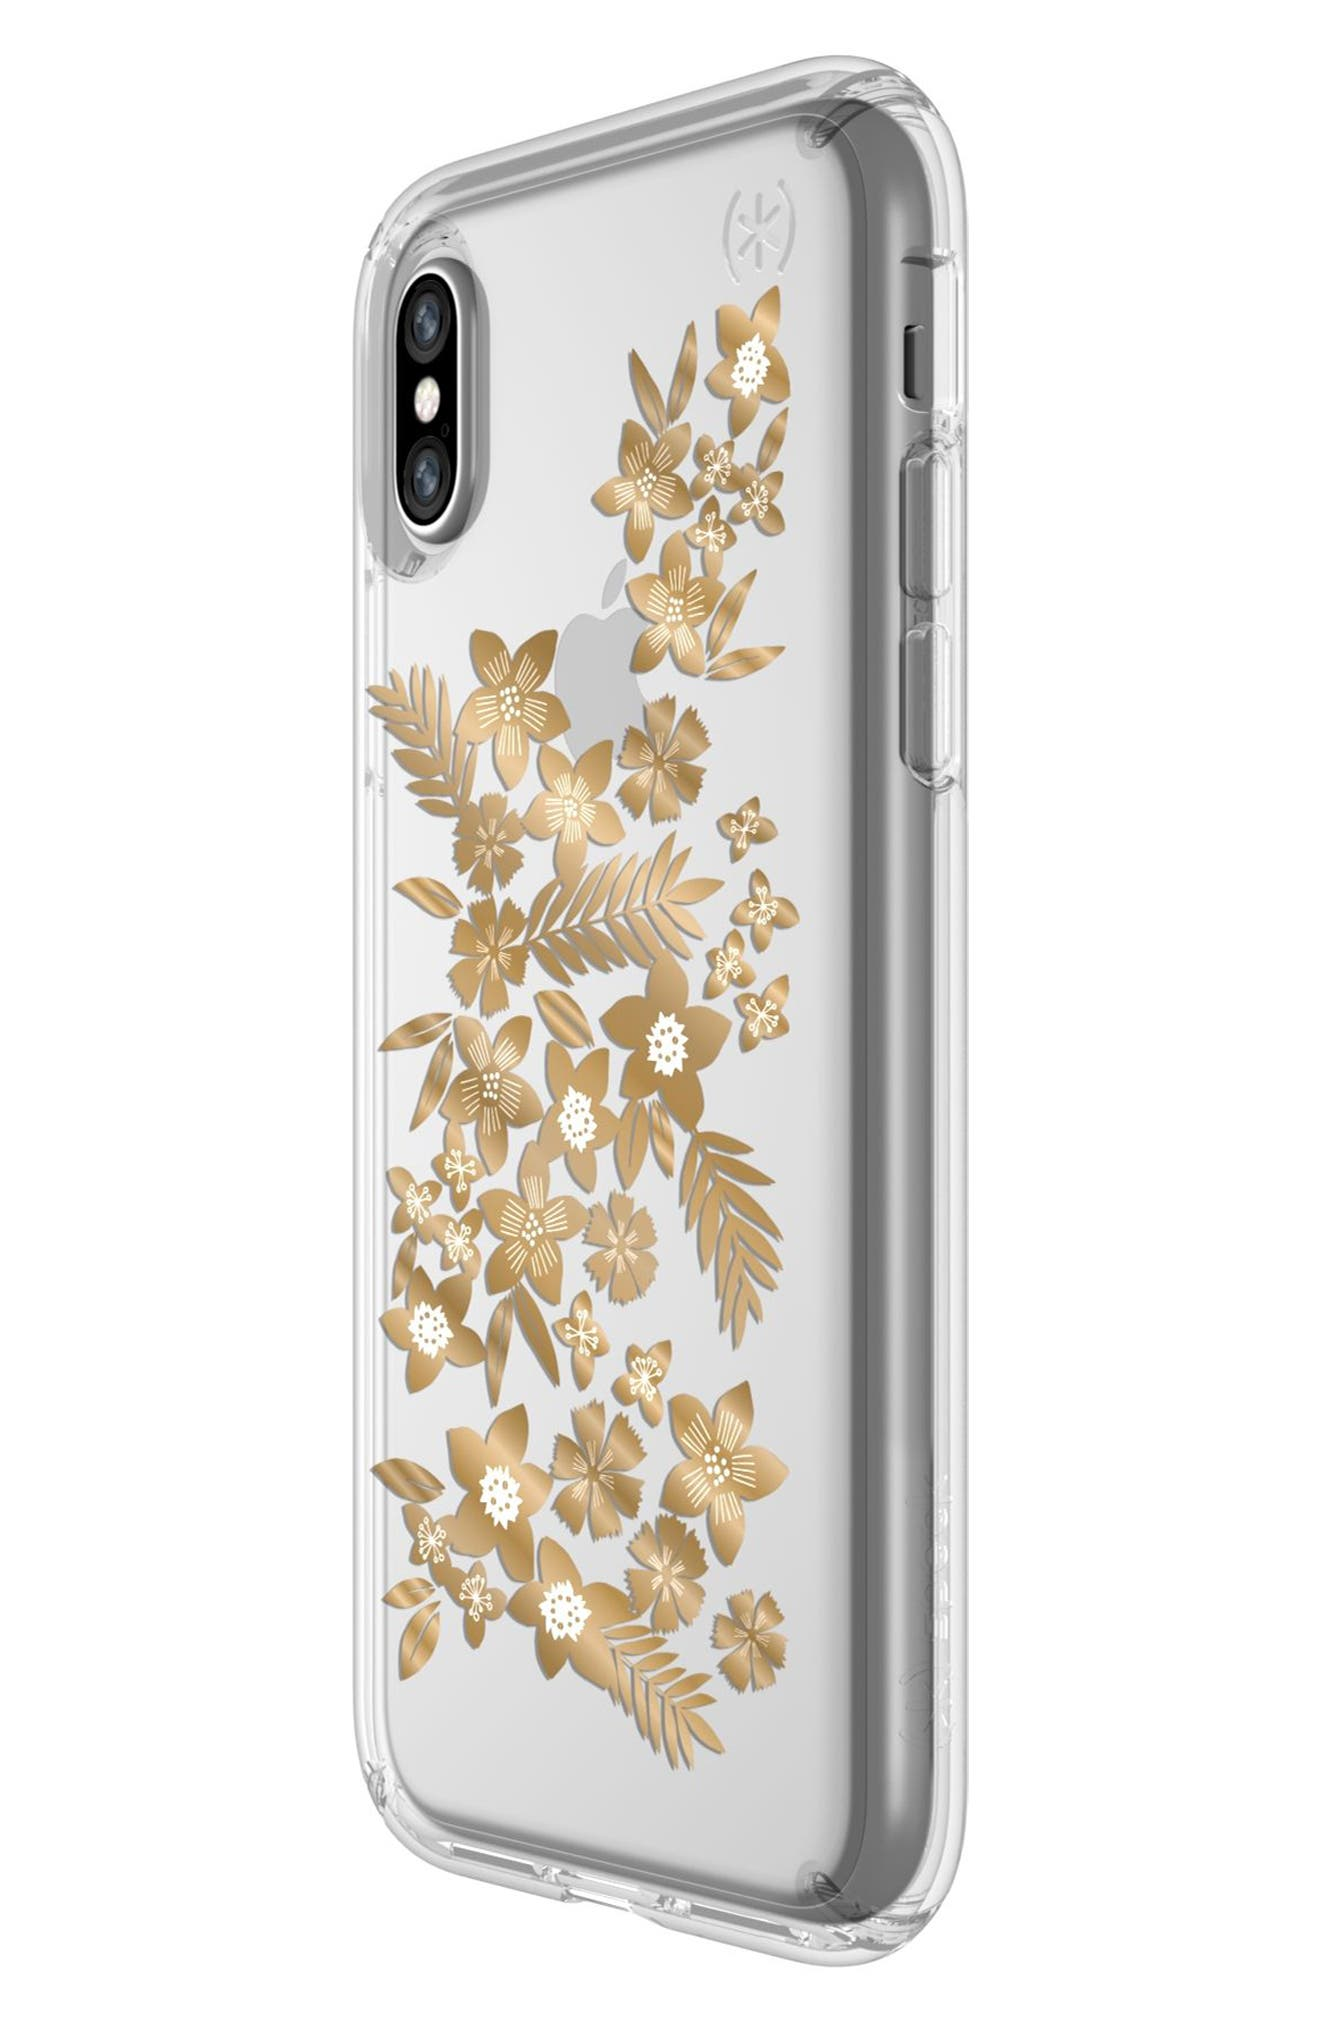 Shimmer Metallic Floral Transparent iPhone X & Xs Case,                             Alternate thumbnail 5, color,                             SHIMMER FLORAL METALLIC/ CLEAR